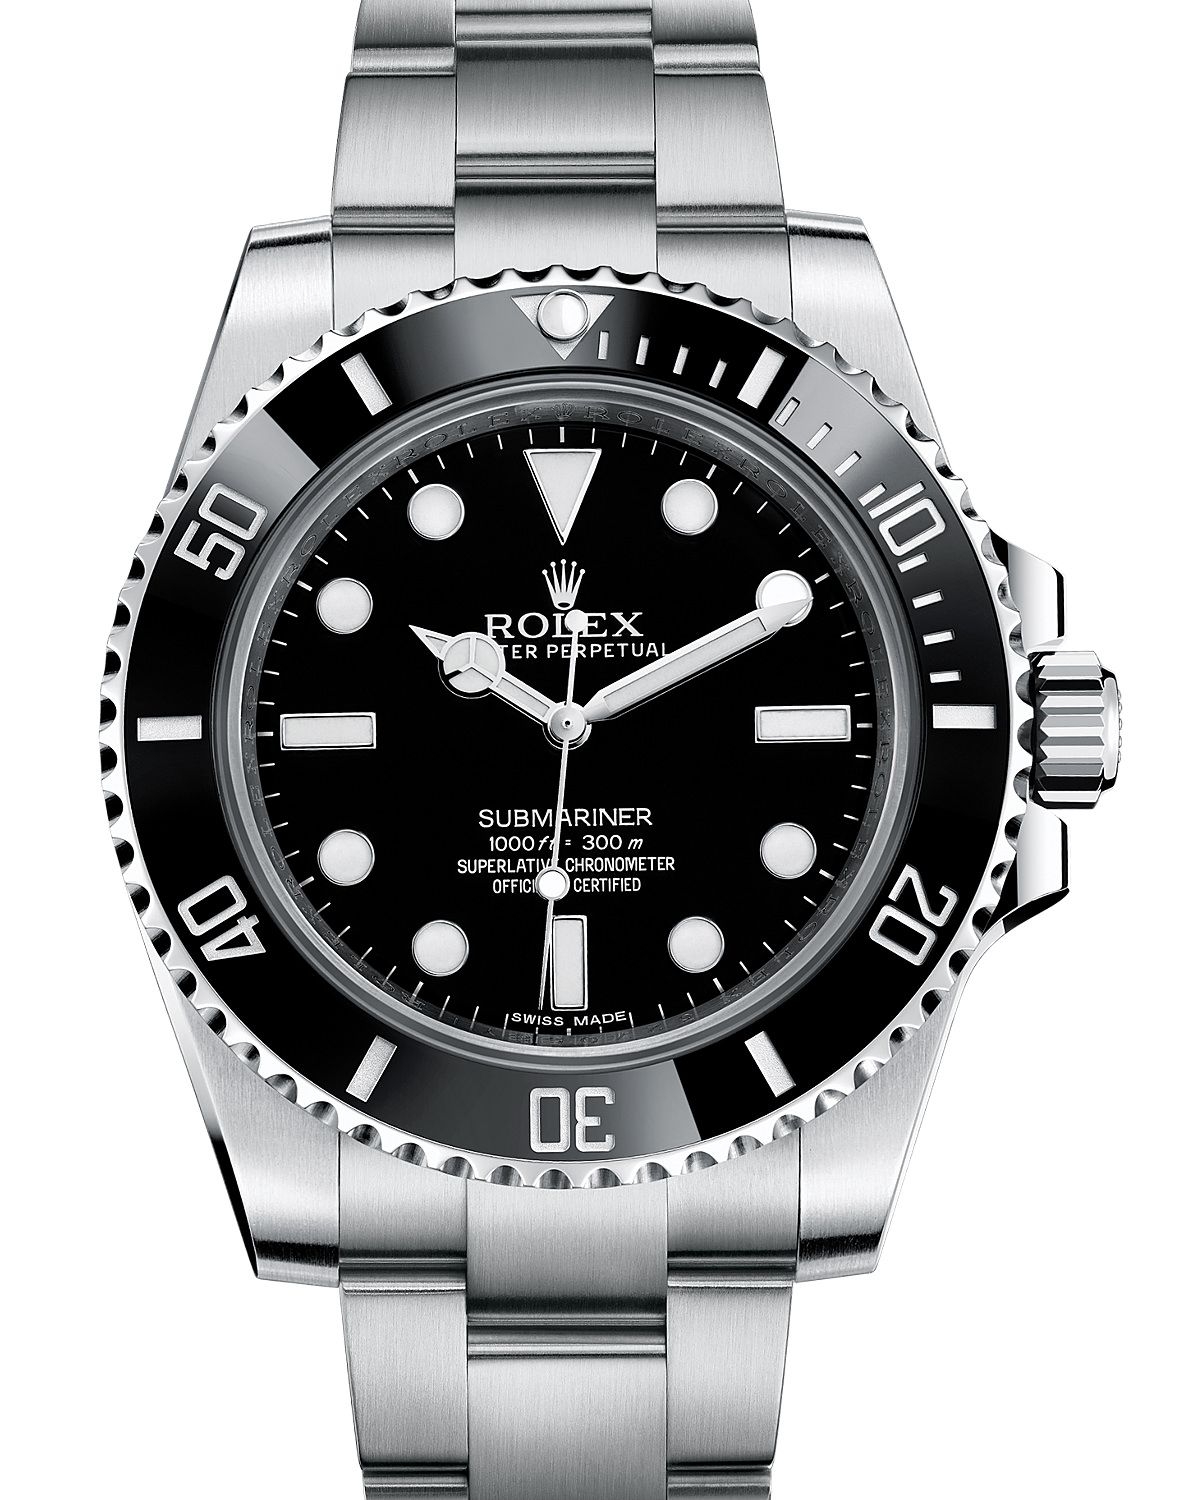 Rolex Submariner Watches in India with Updated price